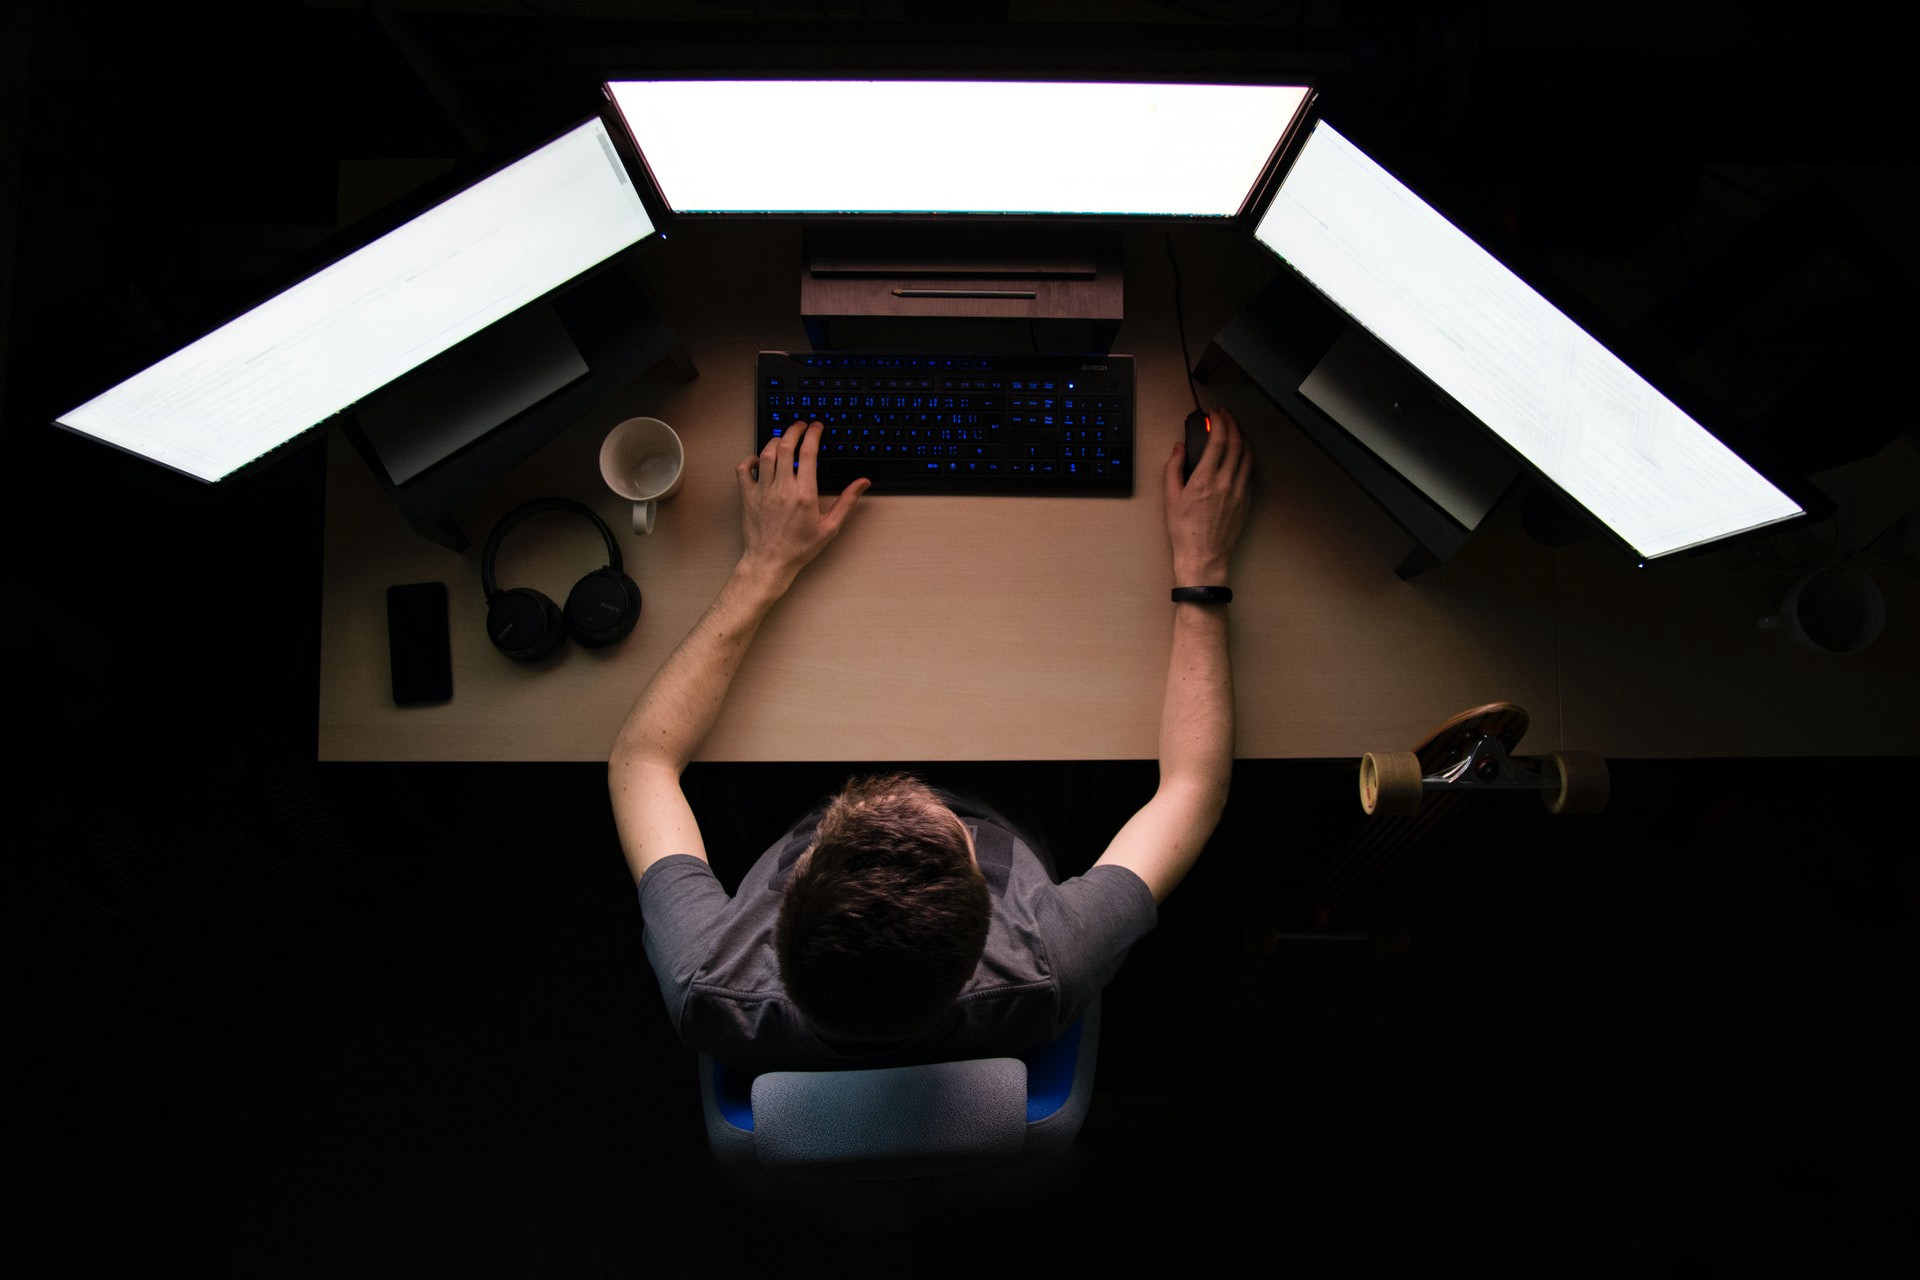 Dark room with man at computer surrounded by bright screens